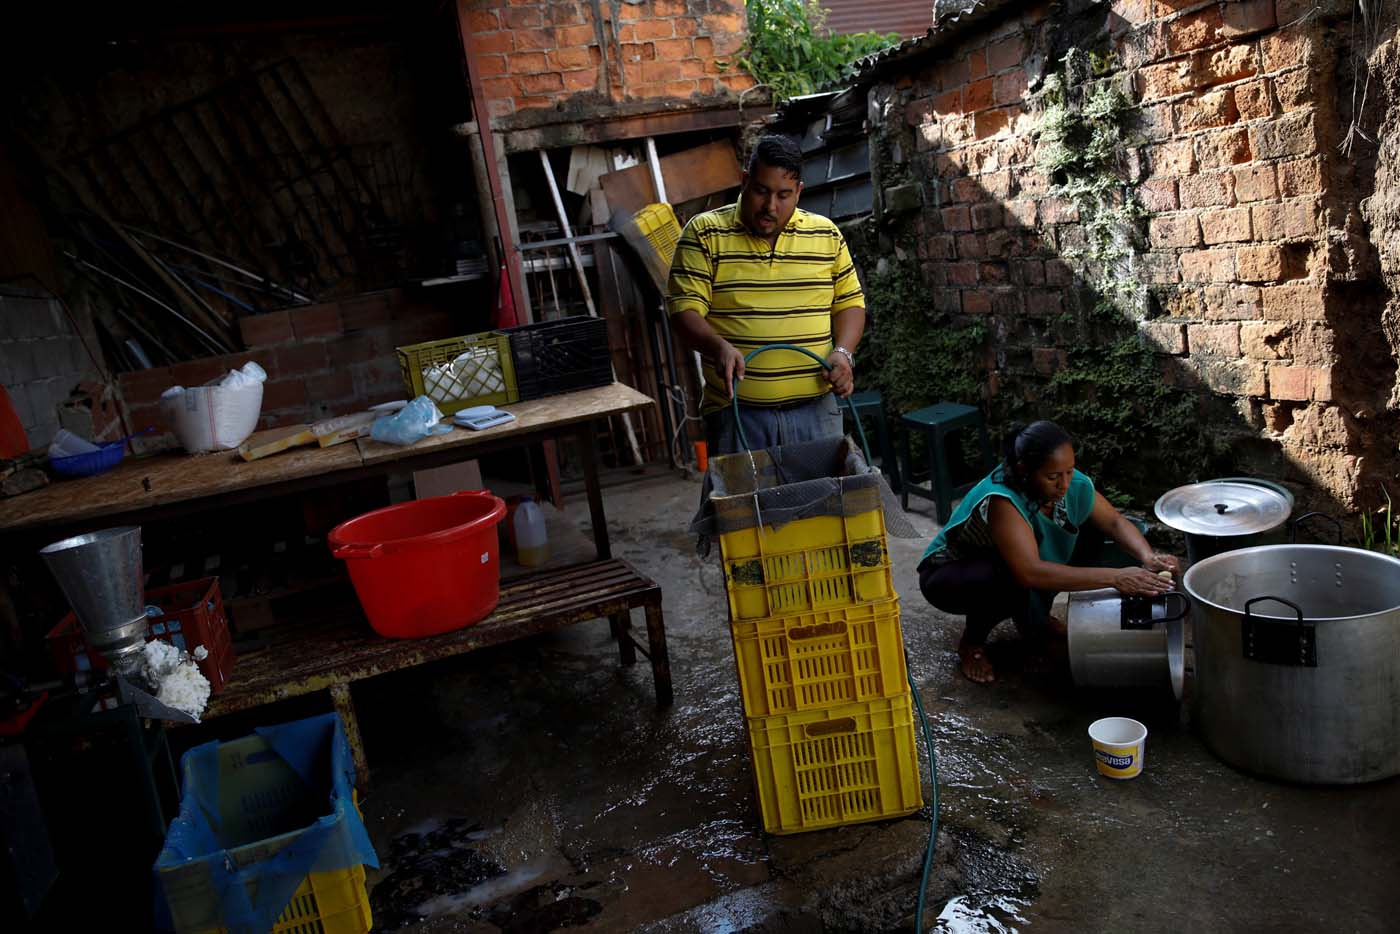 Medical equipment repairman Leandro Colmenares (C) makes corn dough at the backyard of his house in Caracas, Venezuela October 3, 2017. Picture taken October 3, 2017. REUTERS/Carlos Garcia Rawlins